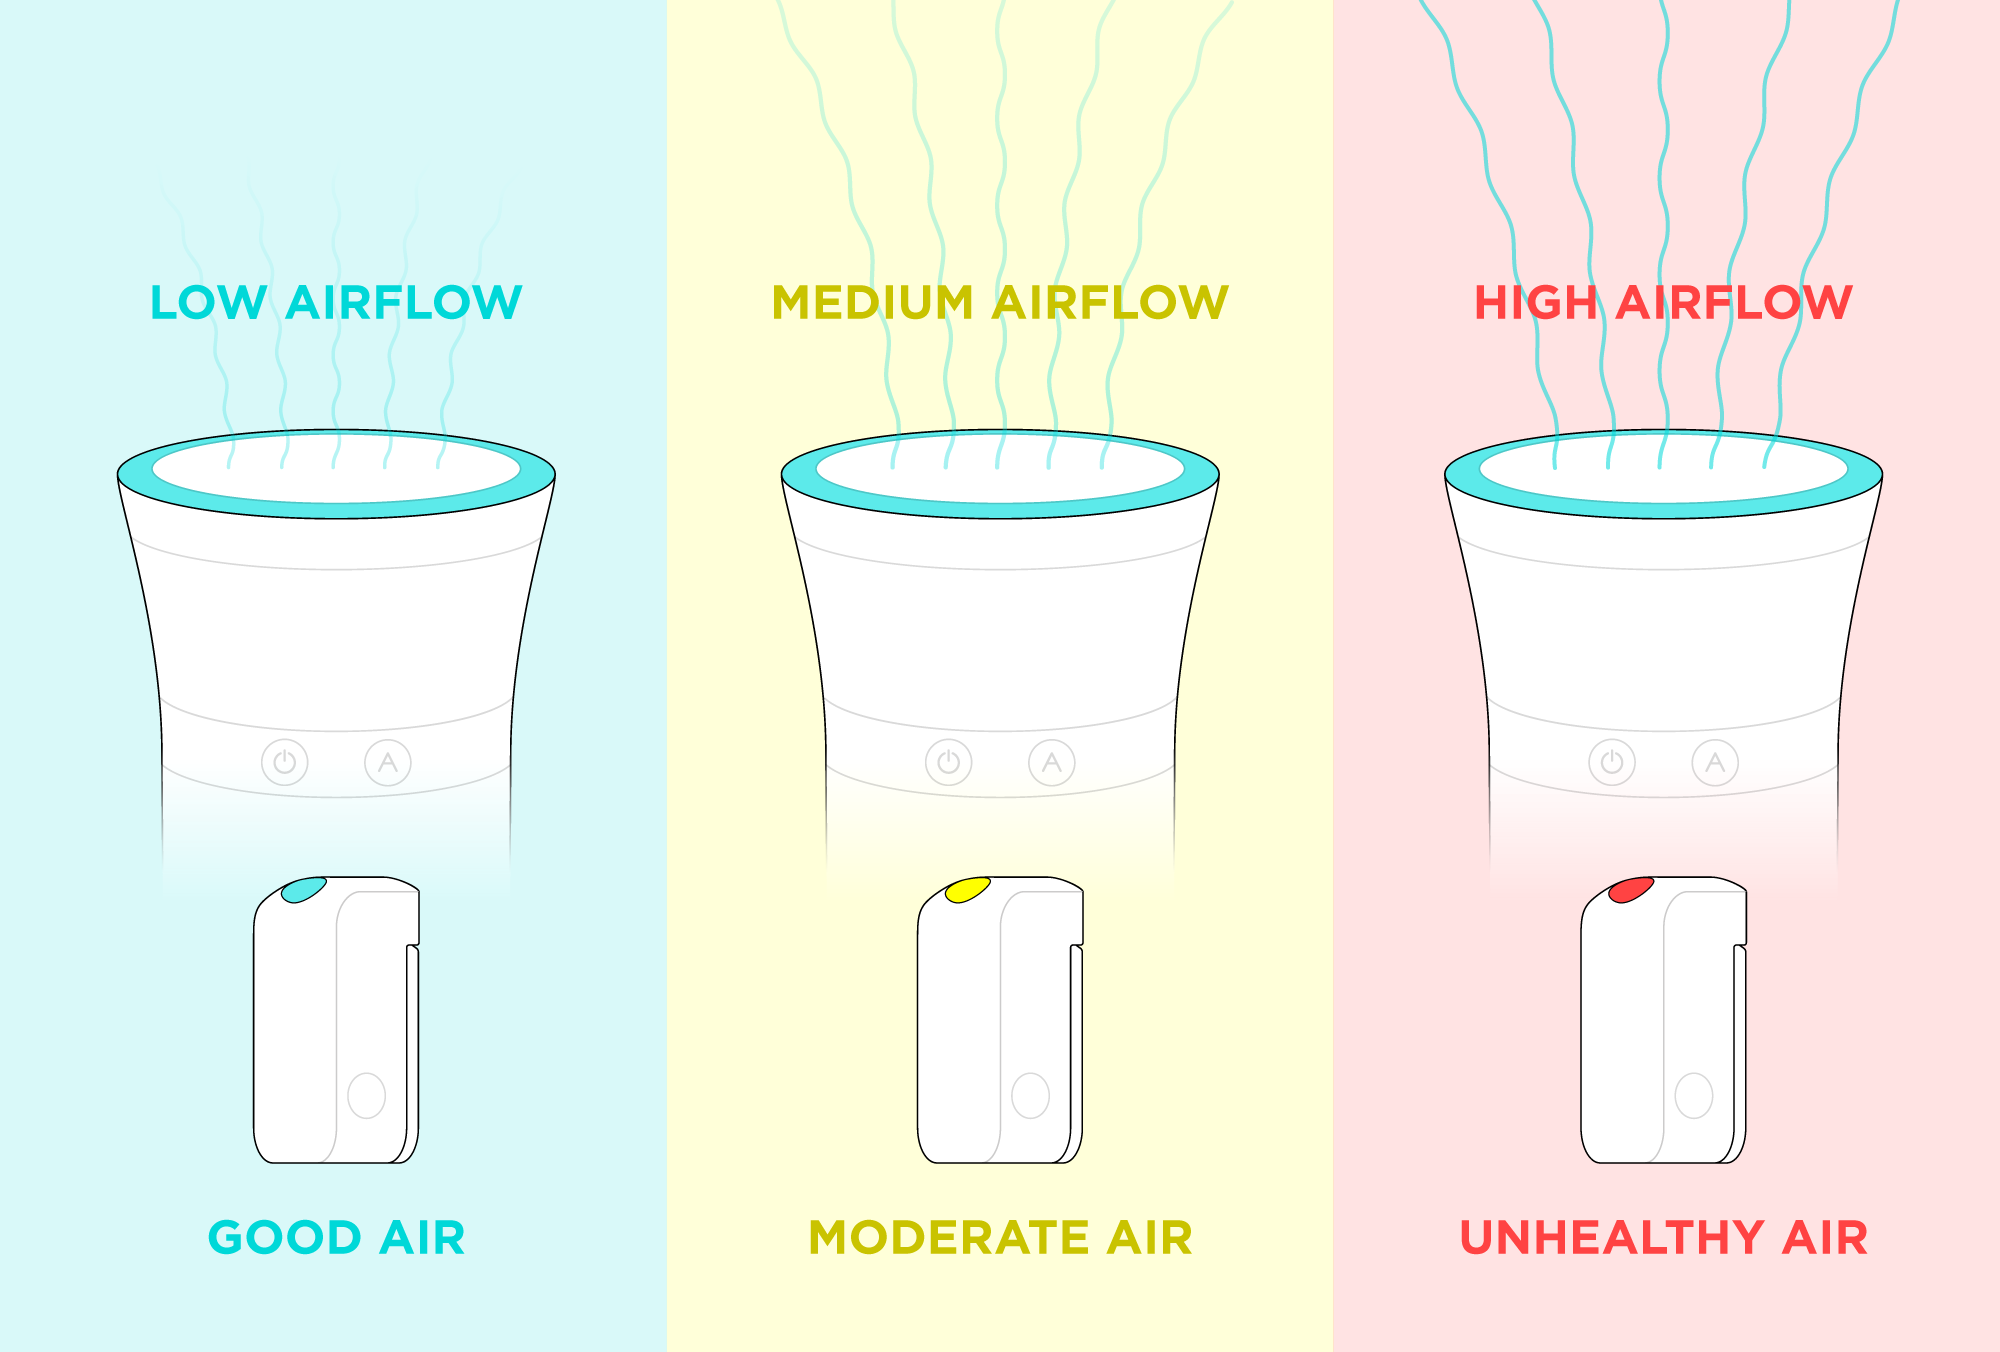 Auto Mode increases the purifier's airflow when the air quality is bad.